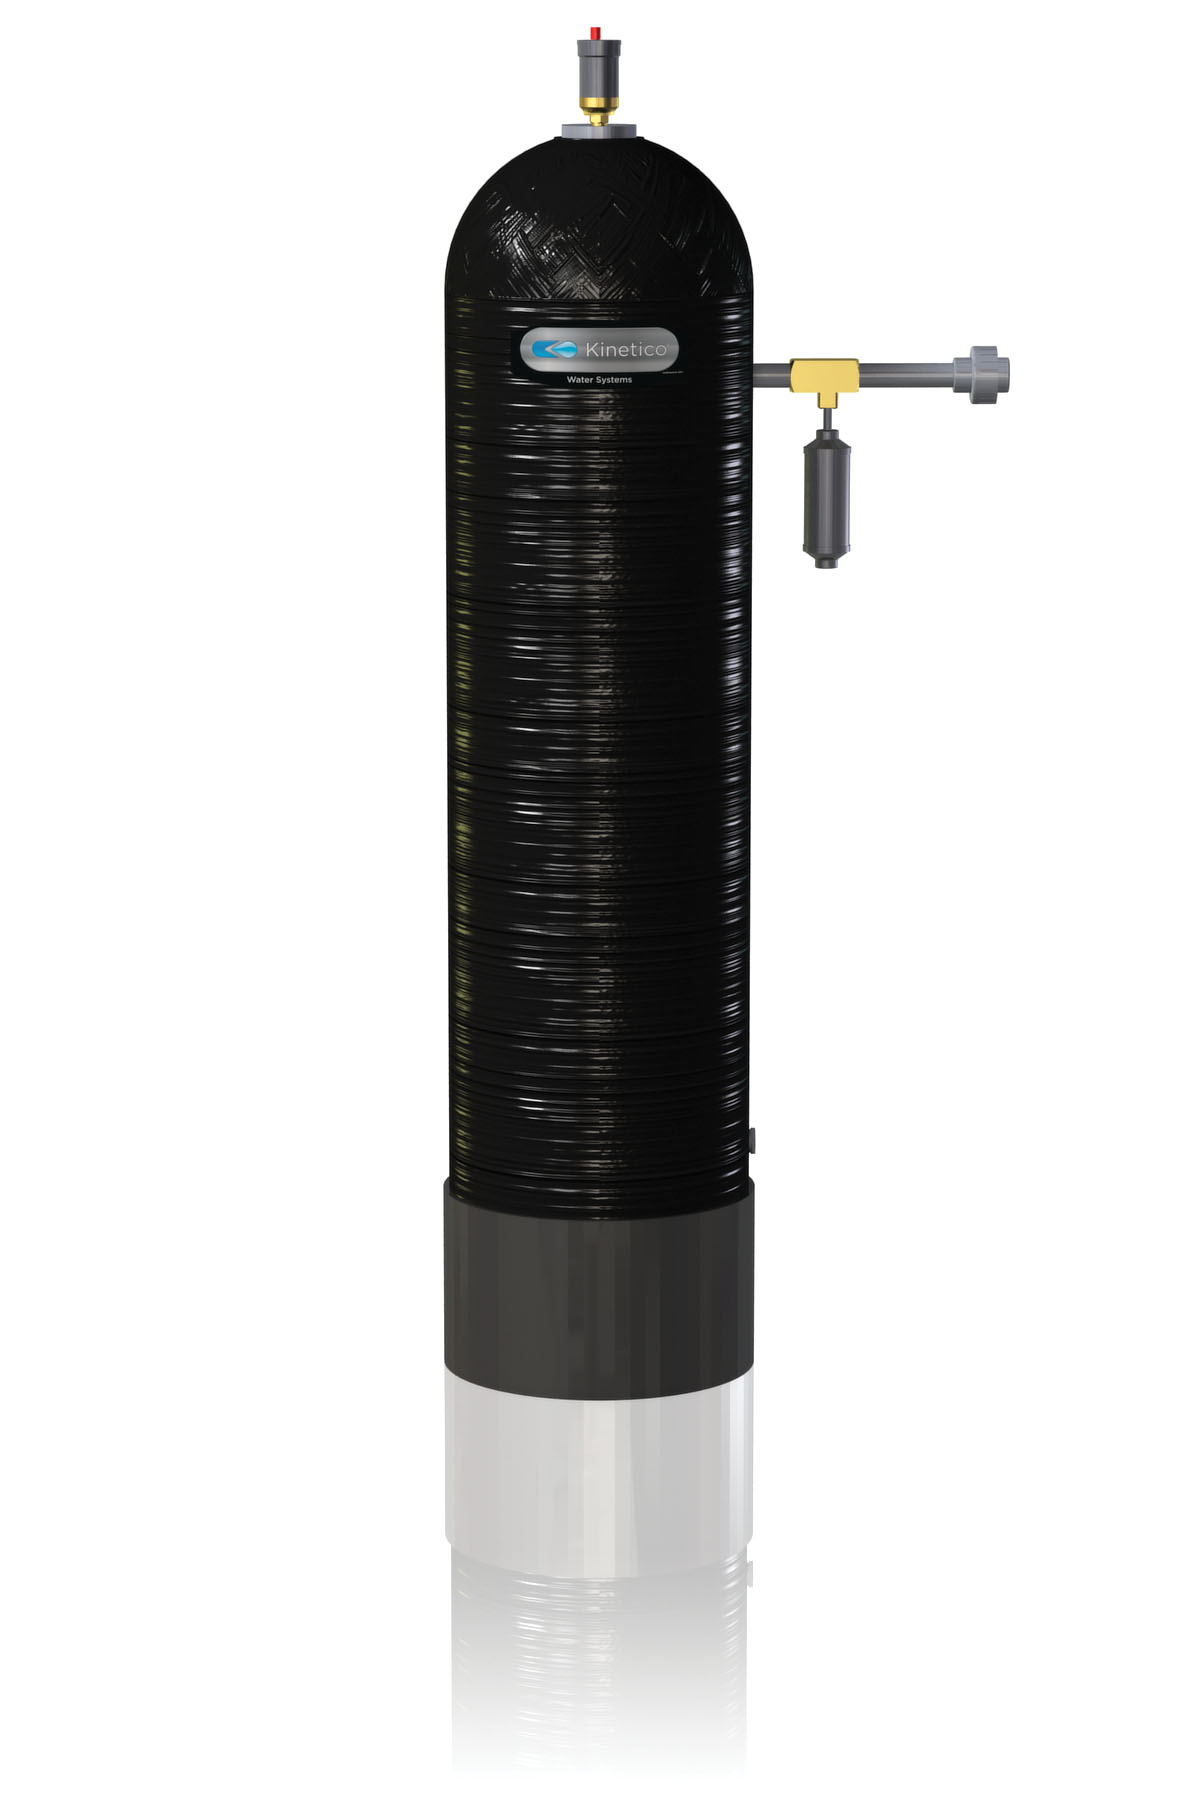 Kinetico Areator Water Filter